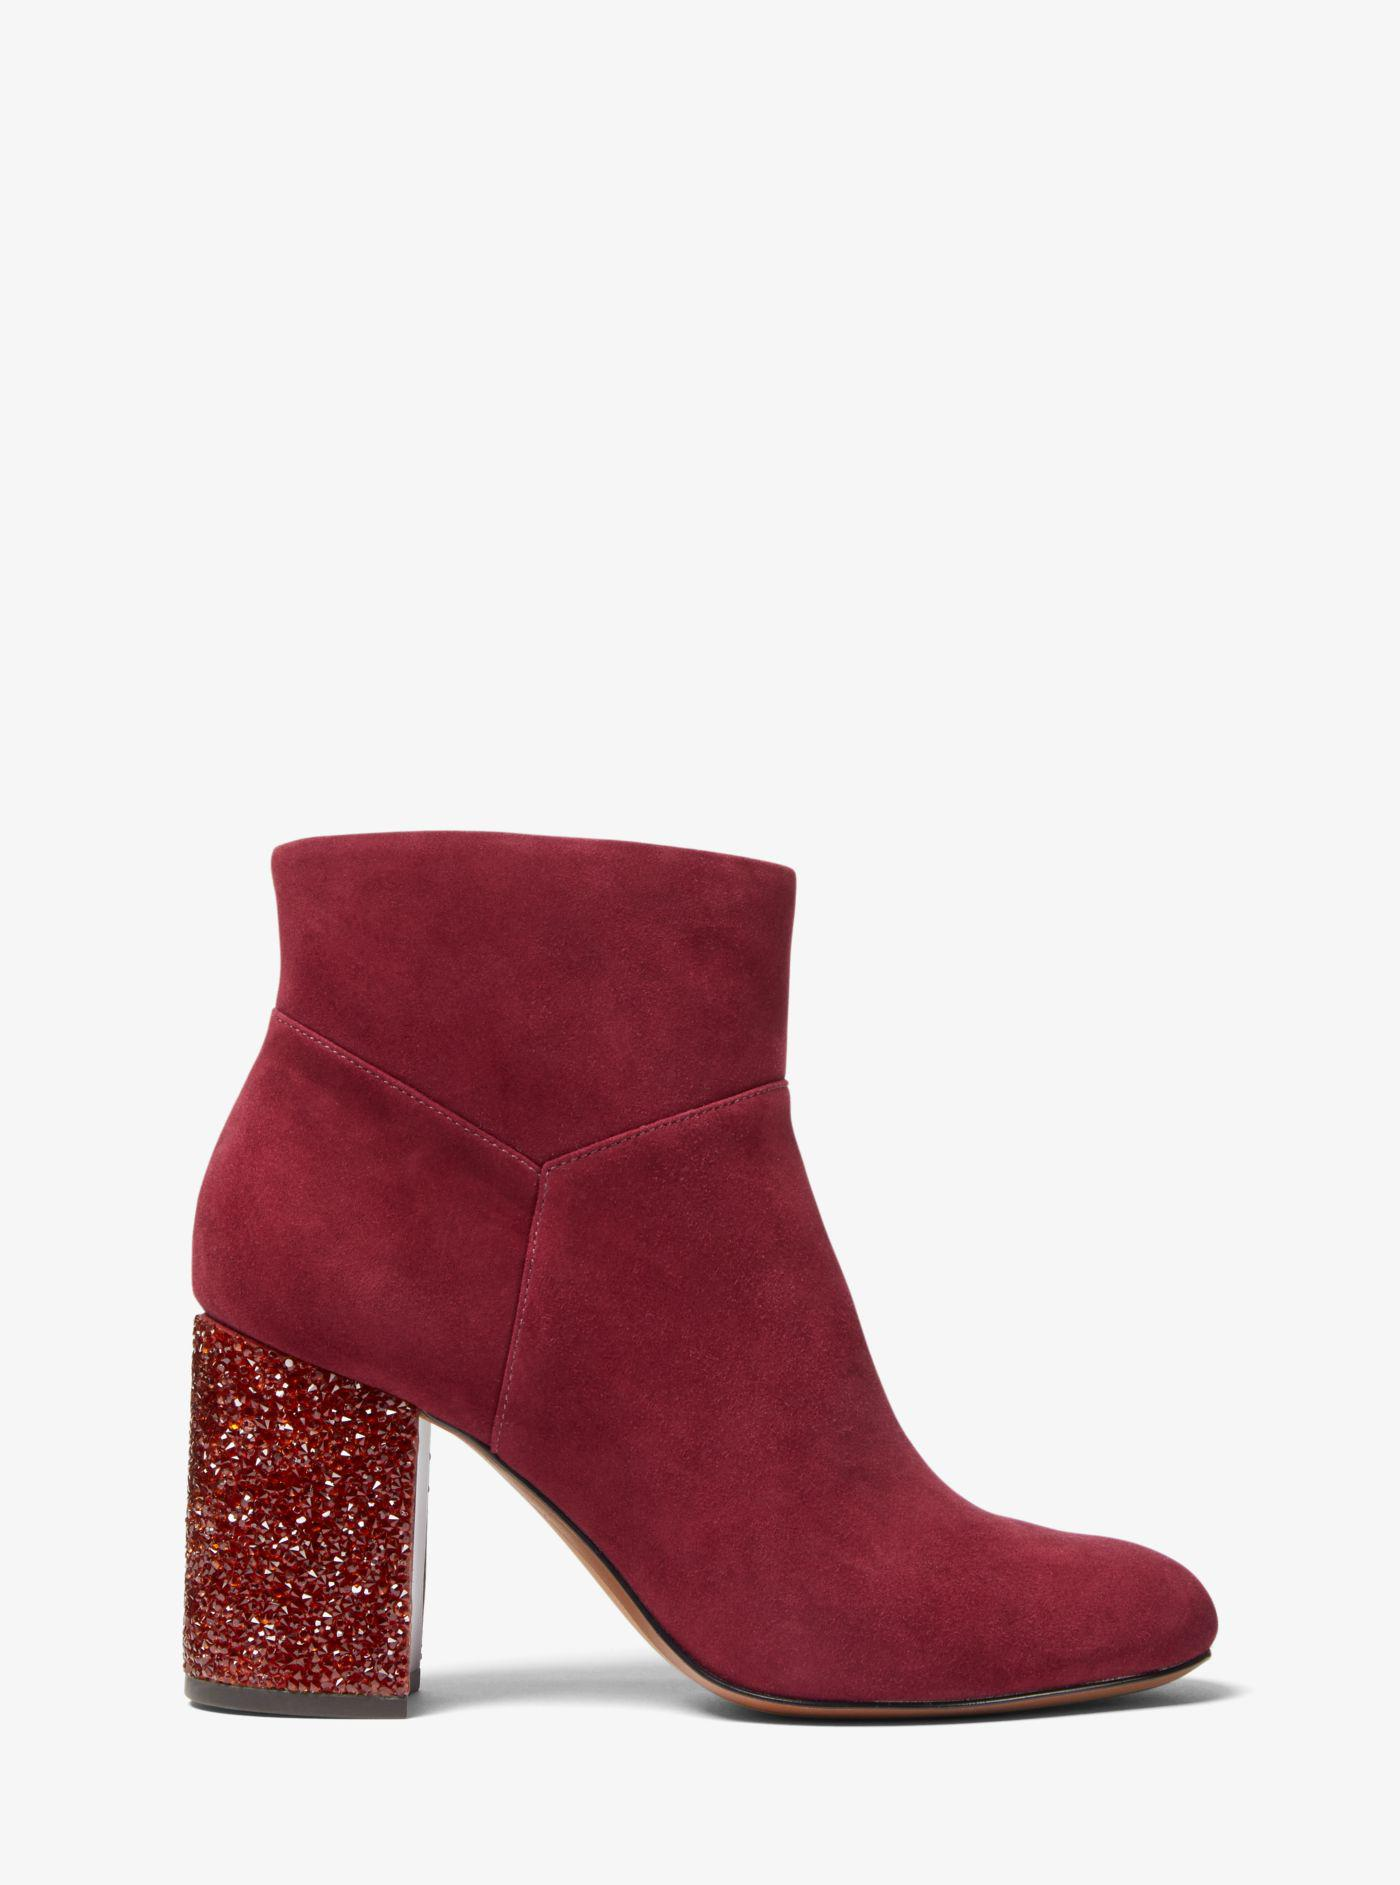 Michael Kors Cher Suede Ankle Boot in